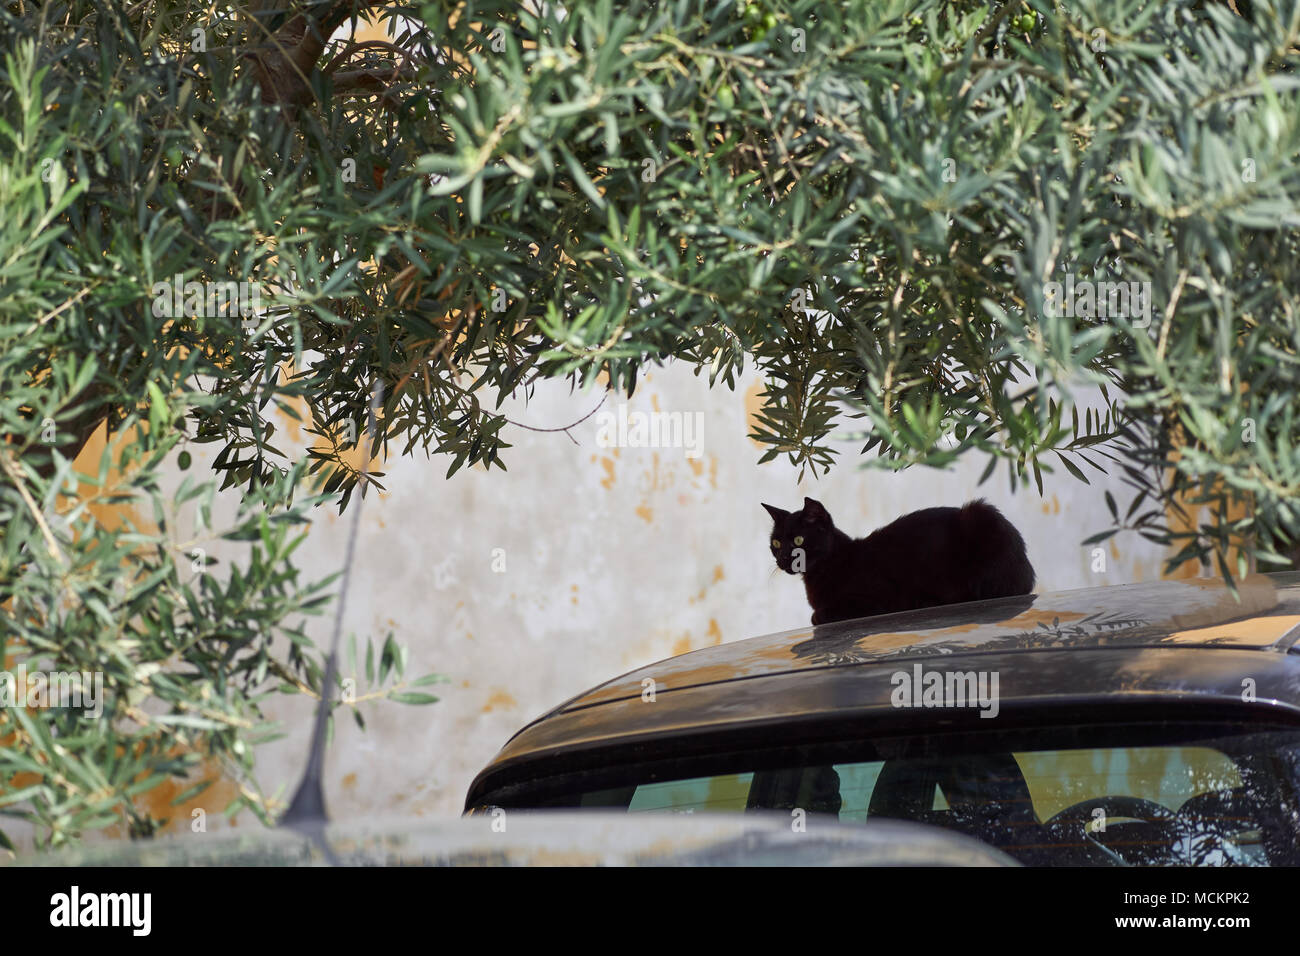 Black cat sitting on a car roof under olive trees in Italy - Stock Image